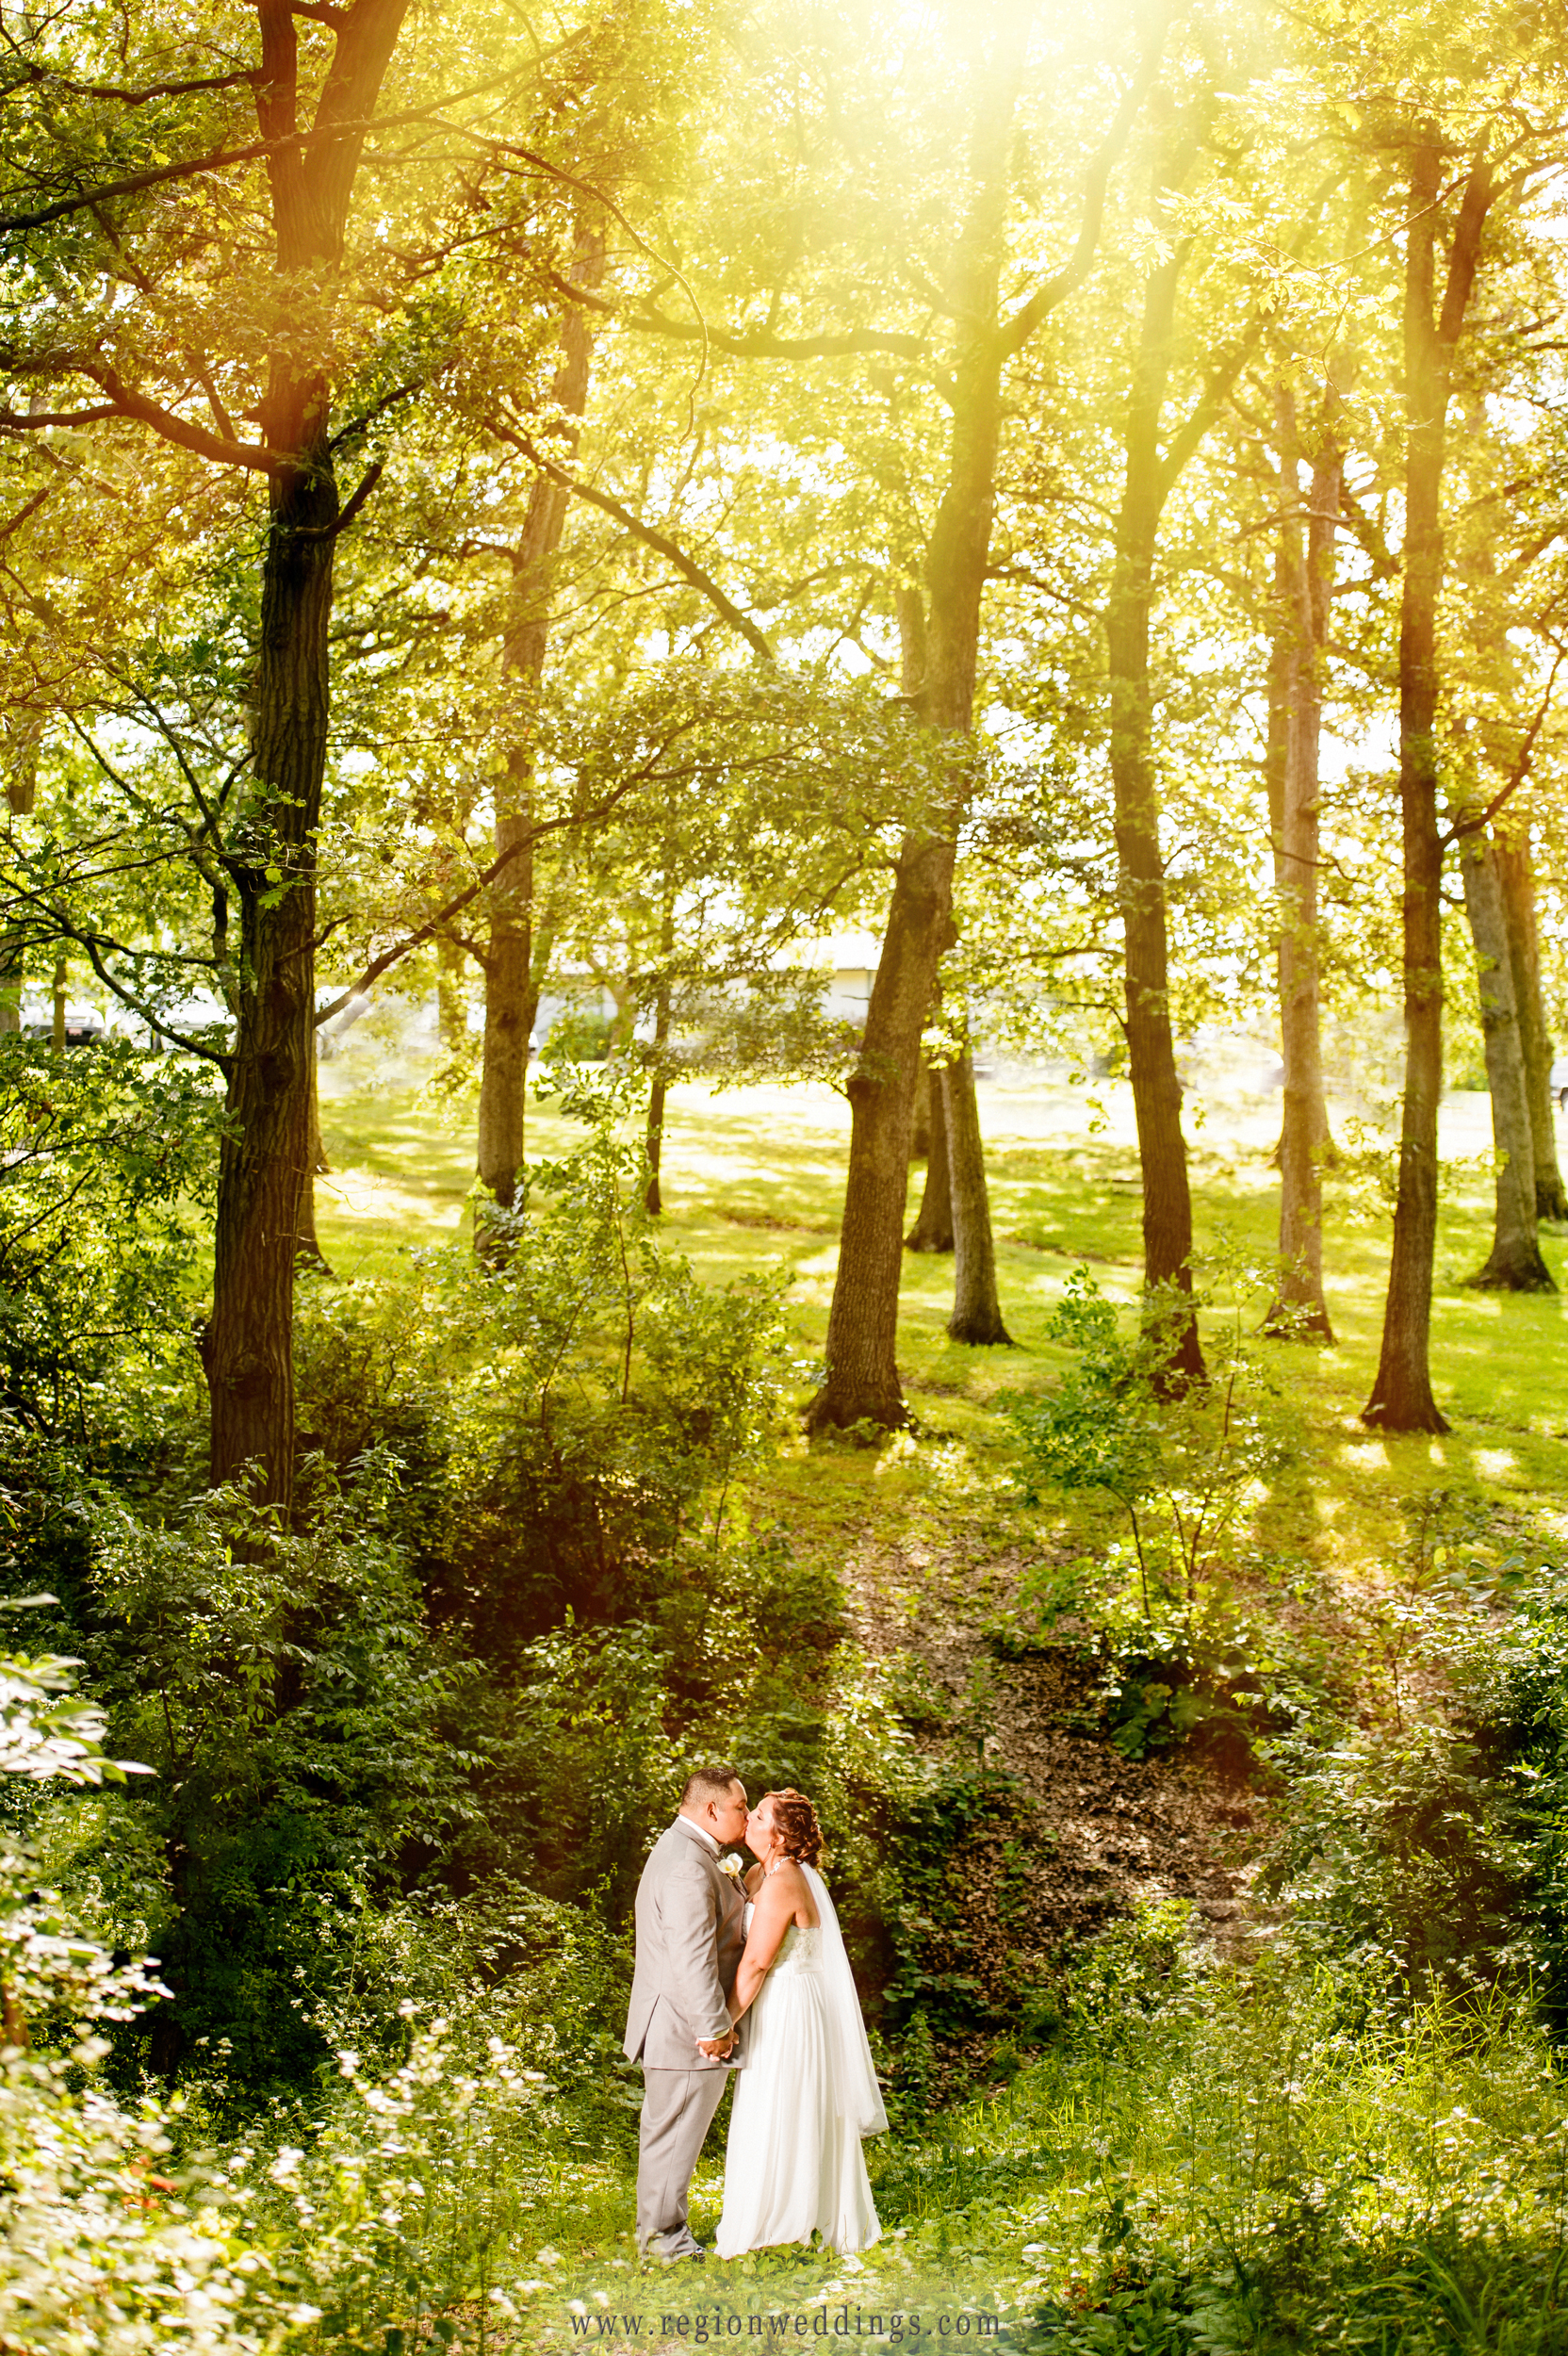 Rays of sun stream through the tall trees at Lemon Lake Park as the bride and groom kiss.